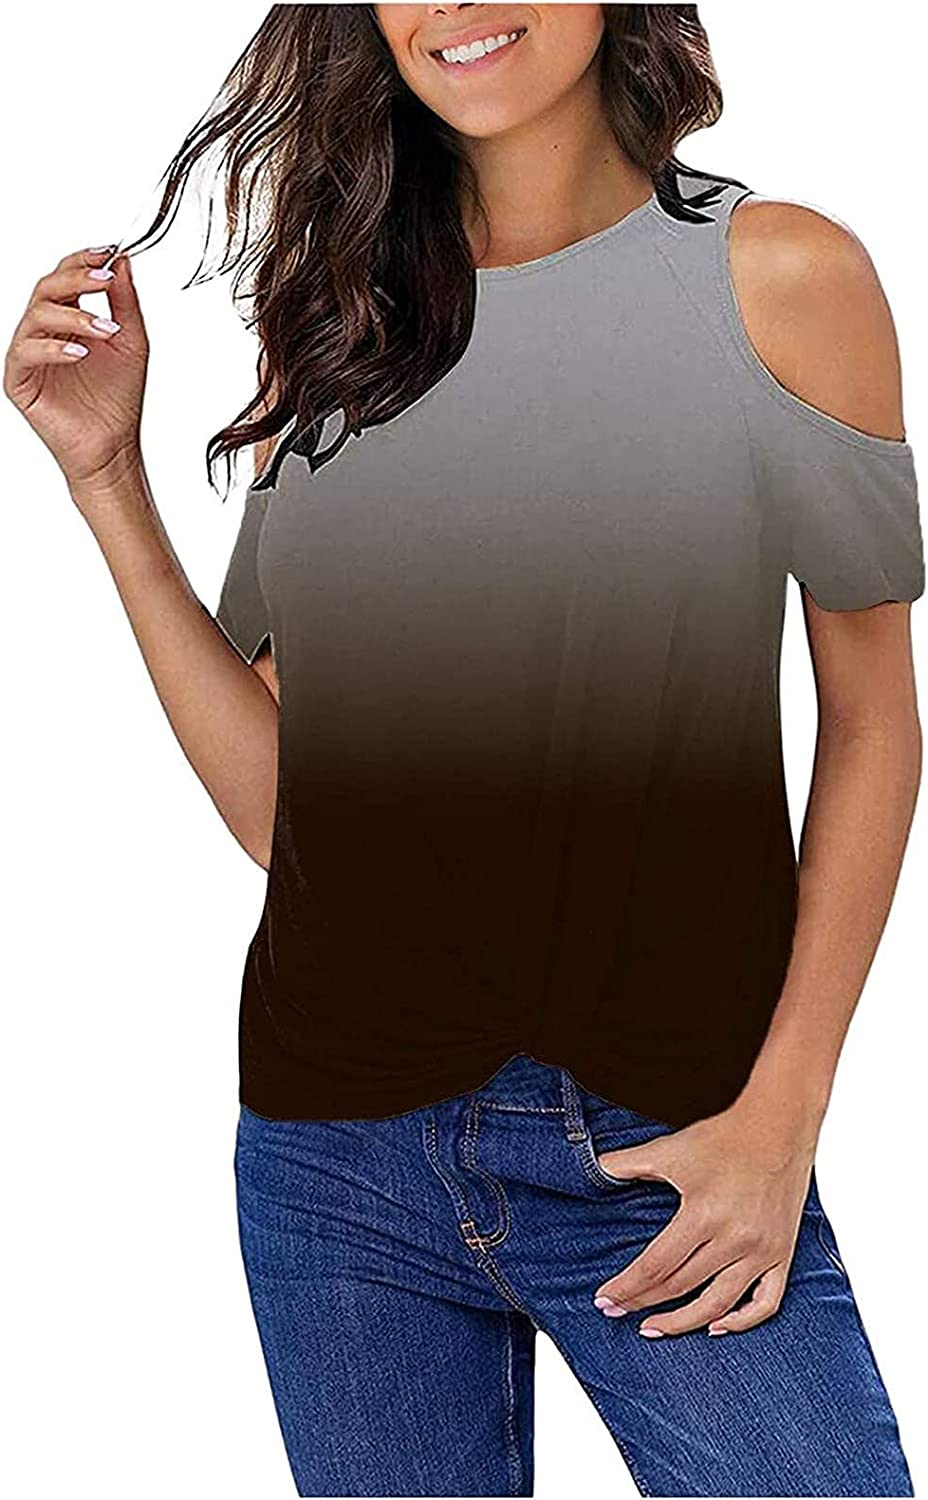 Women's Casual Twist Max Quality inspection 52% OFF Knot T-Shirts Top Summe Shoulder Cold Basic